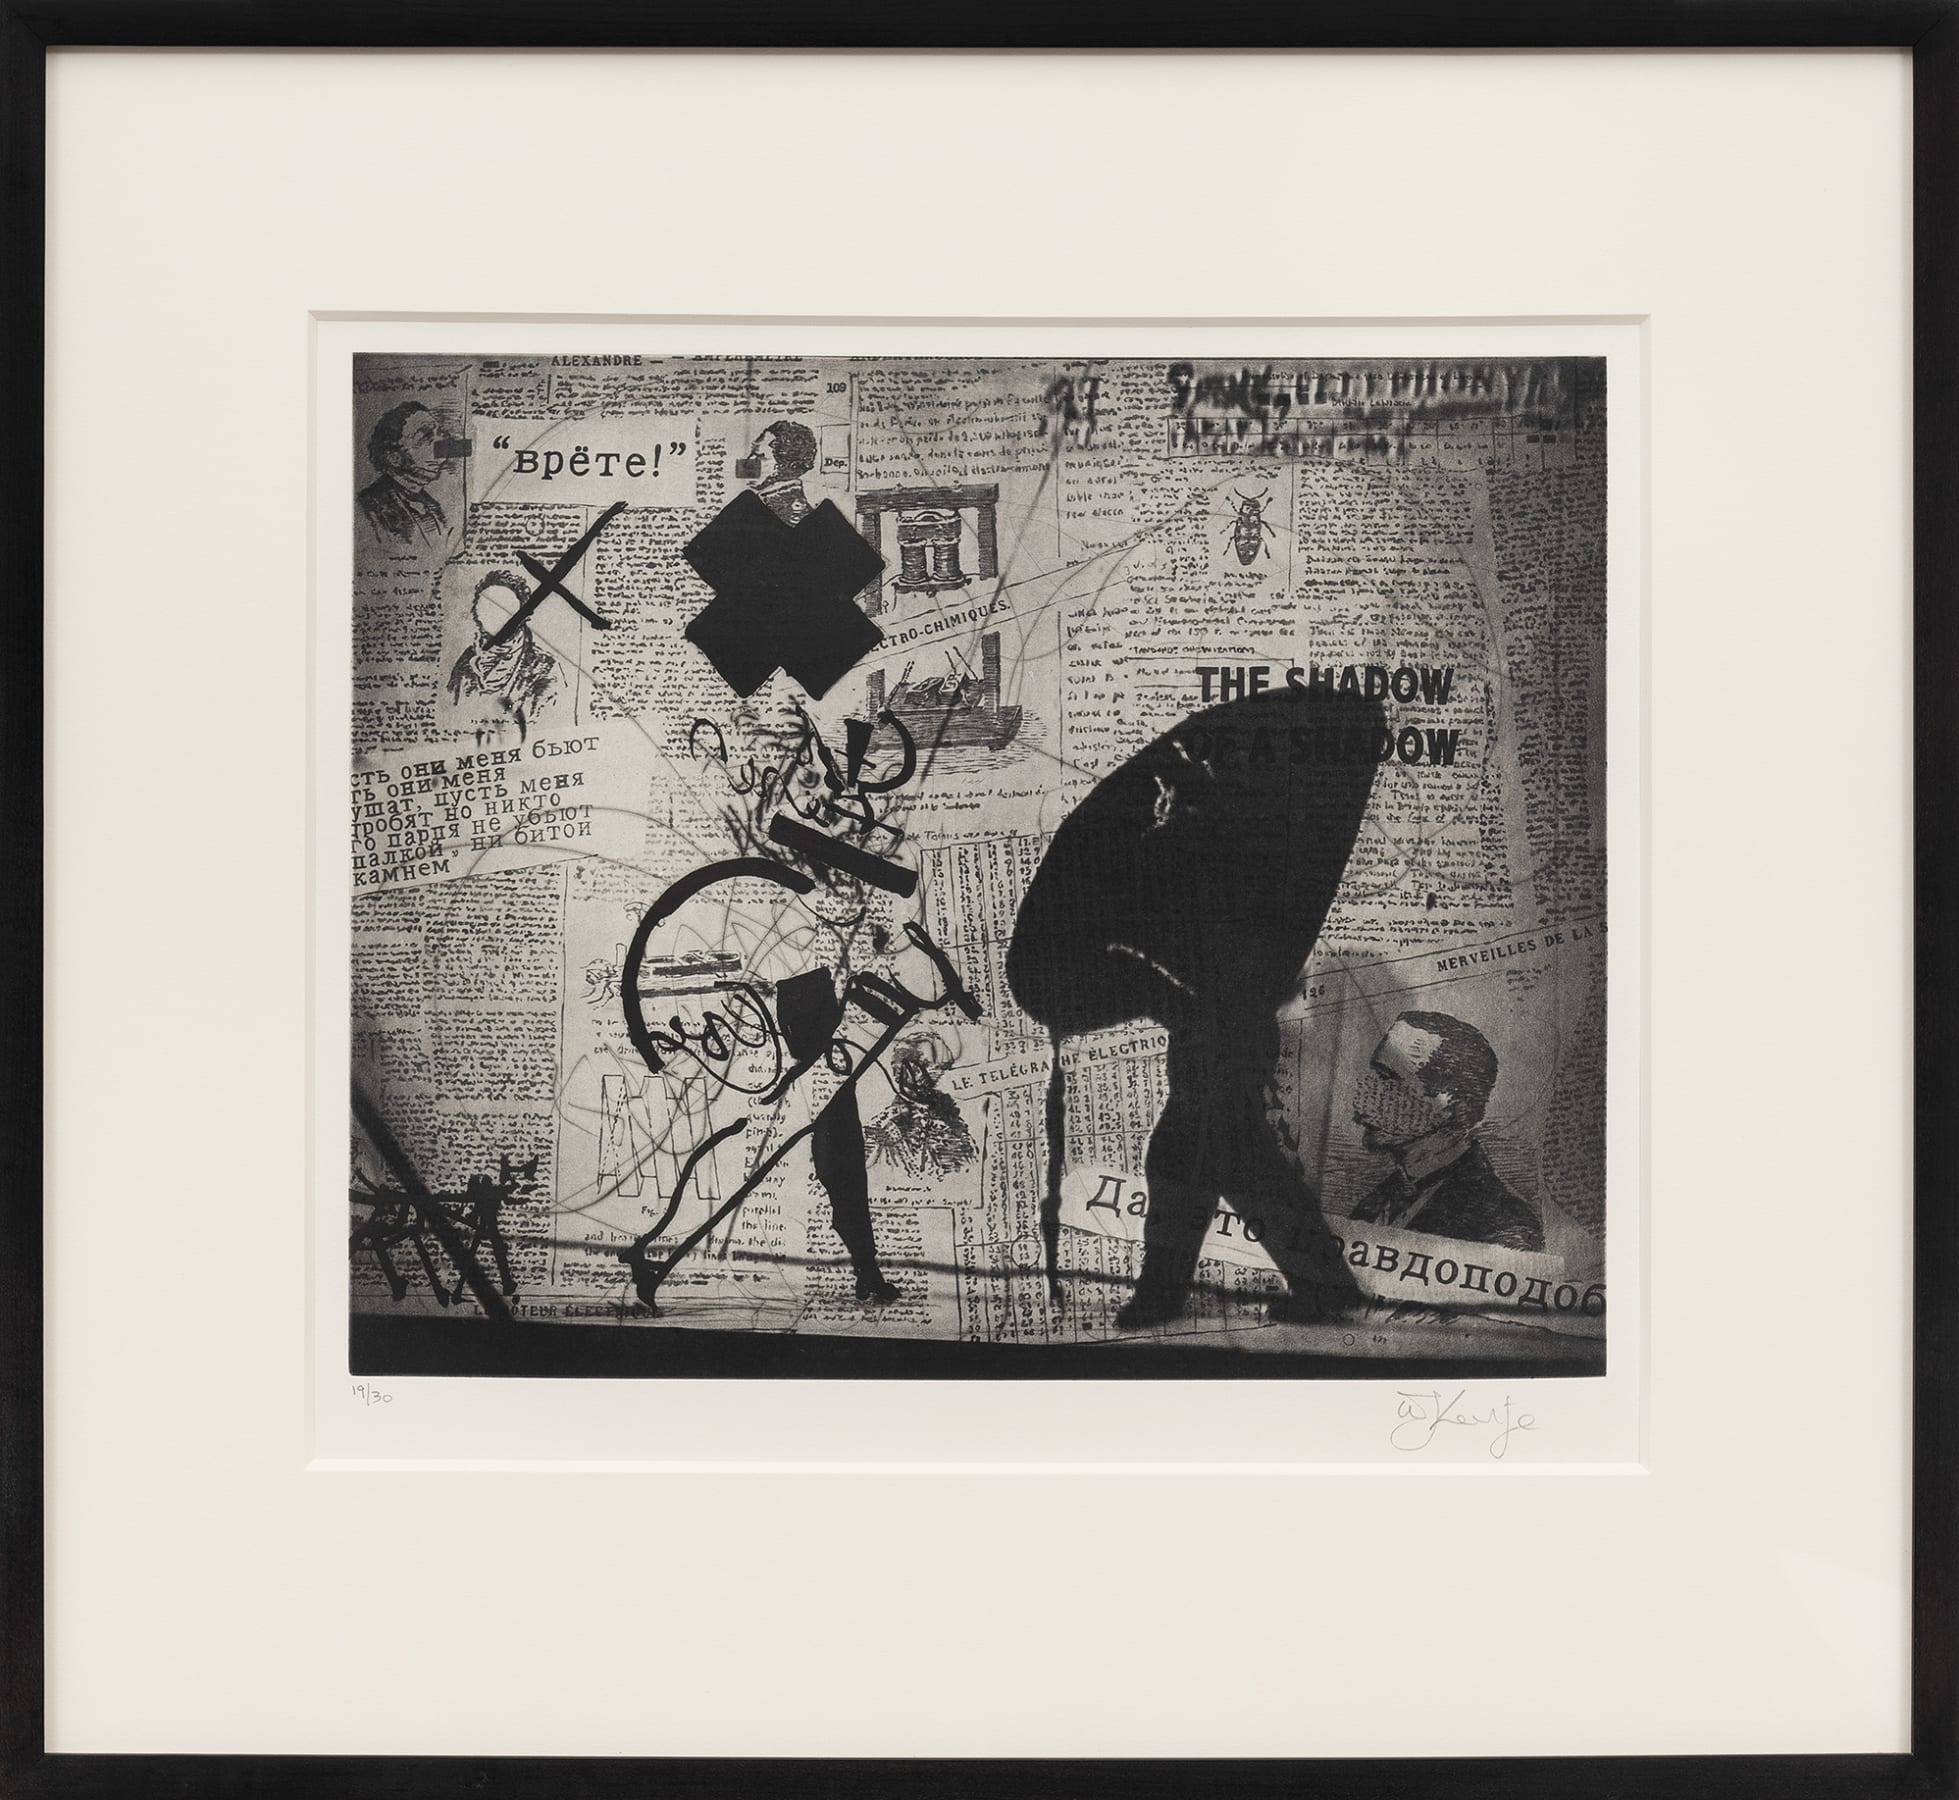 William Kentridge, Nose projection with walking woman, 2010